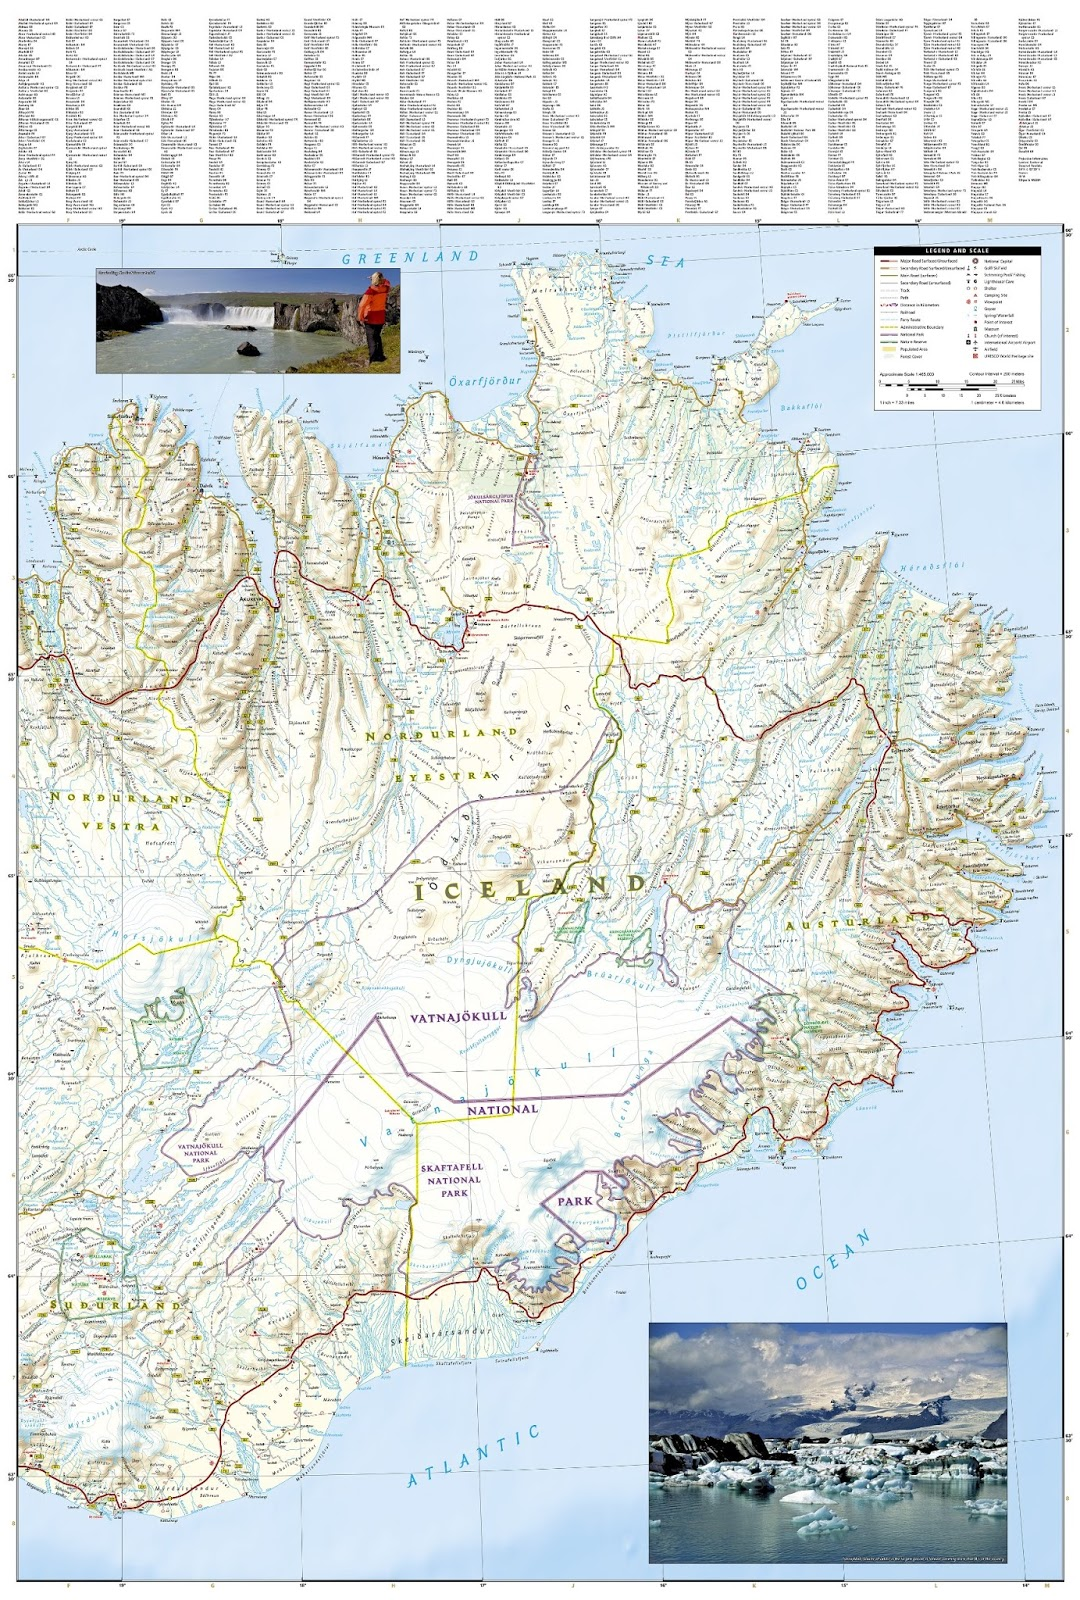 Iceland: Travel map